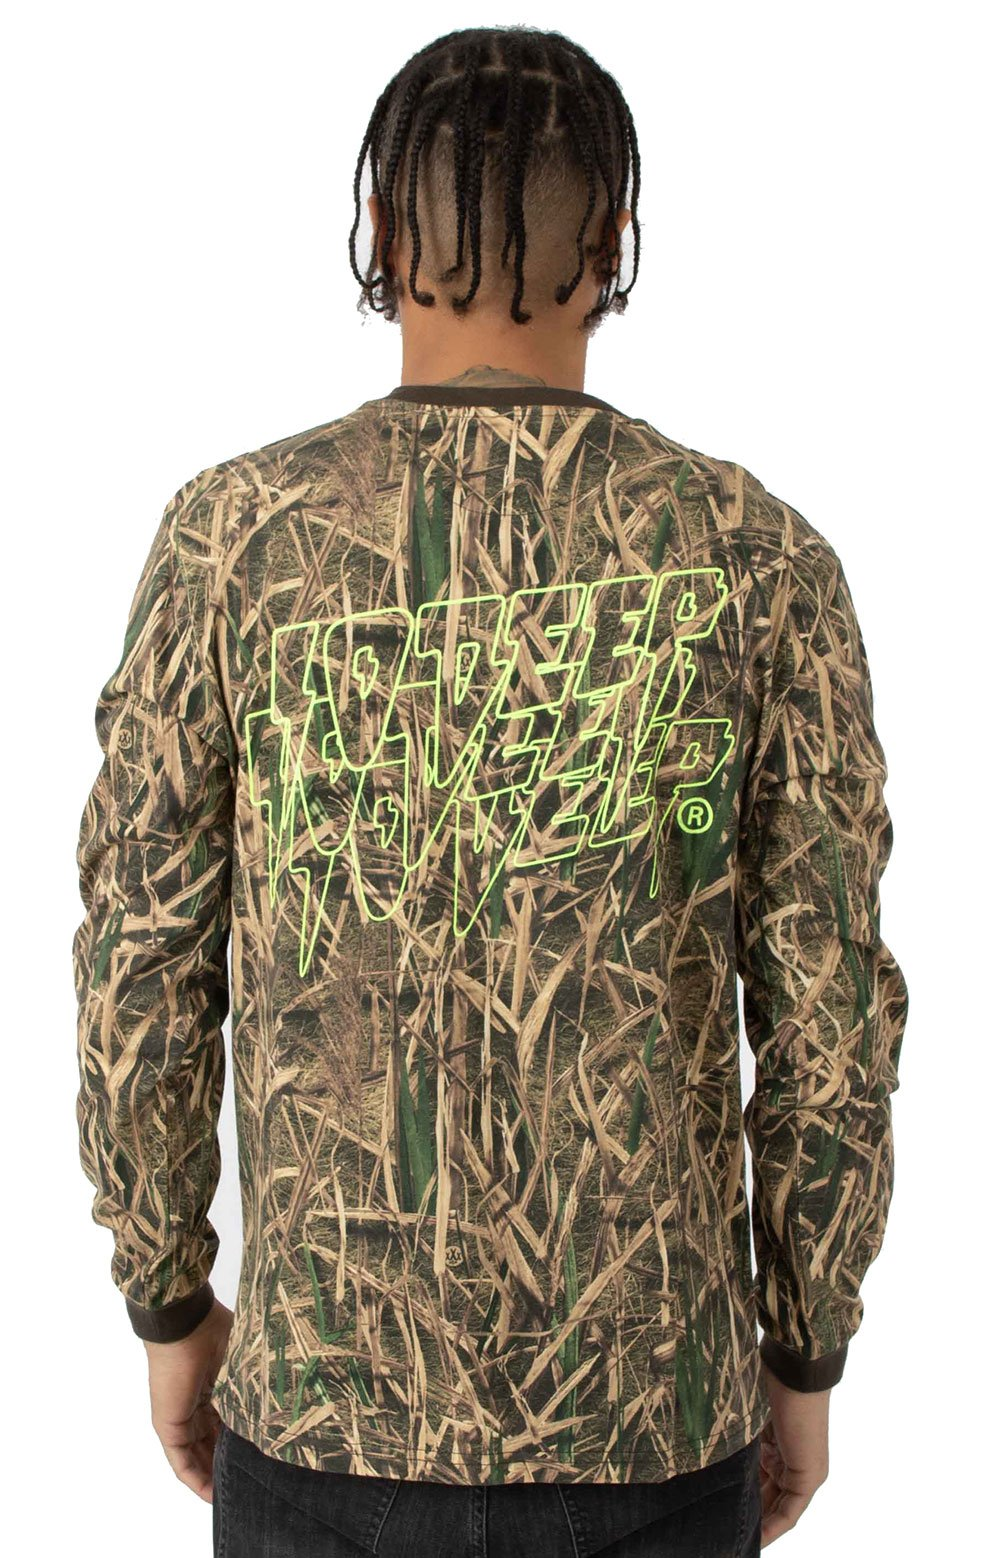 Hunter's L/S Shirt - Reed Camo